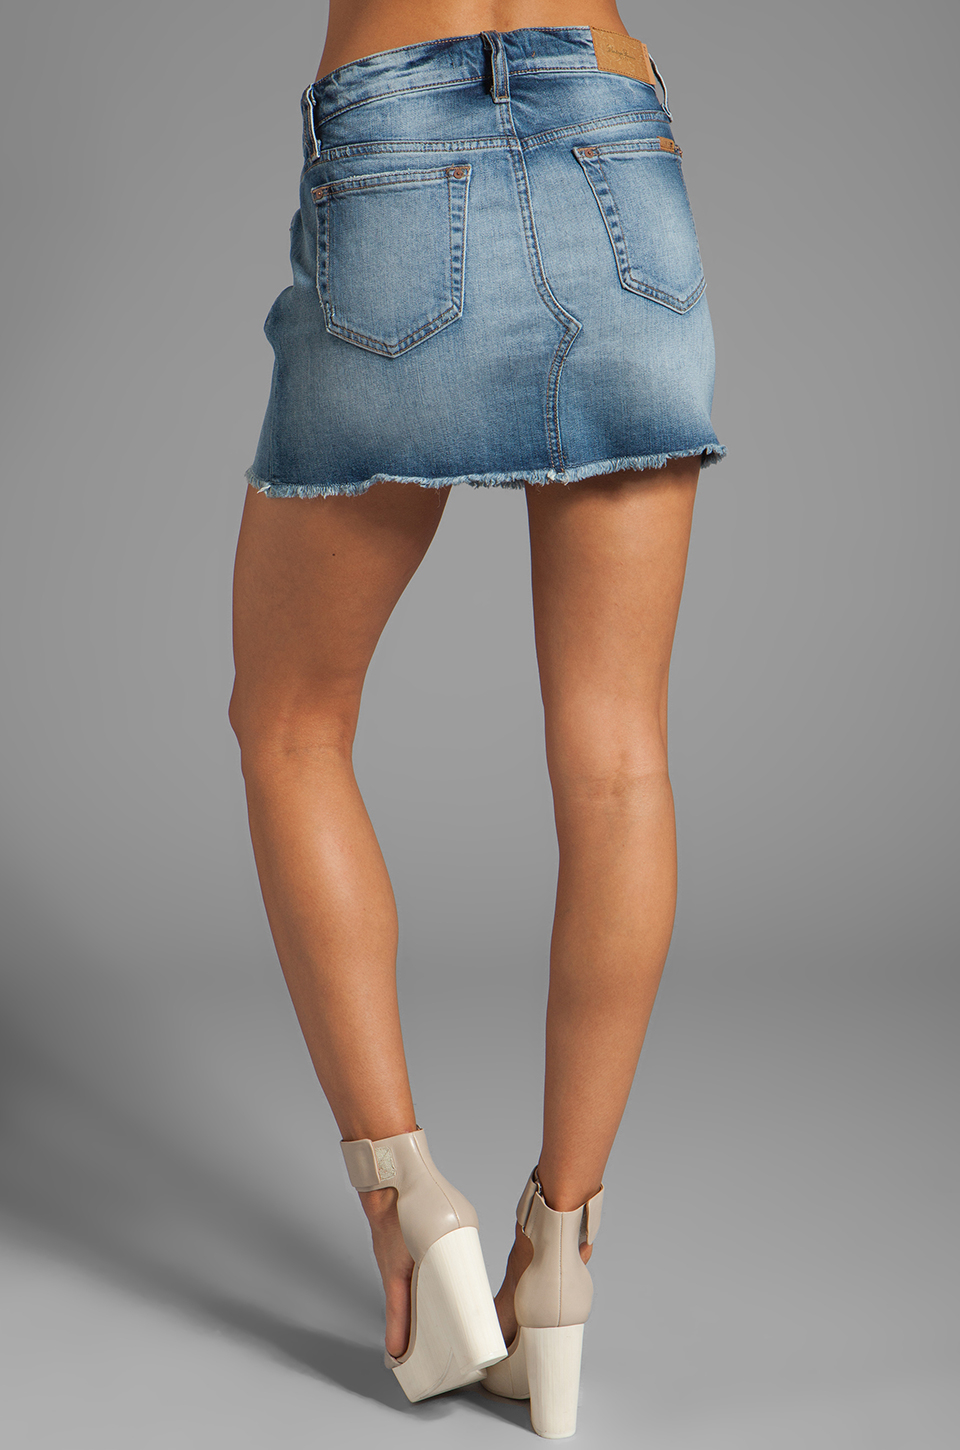 Joe's jeans Mila Easy Cut Off Mini Skirt in Light Blue in Blue | Lyst